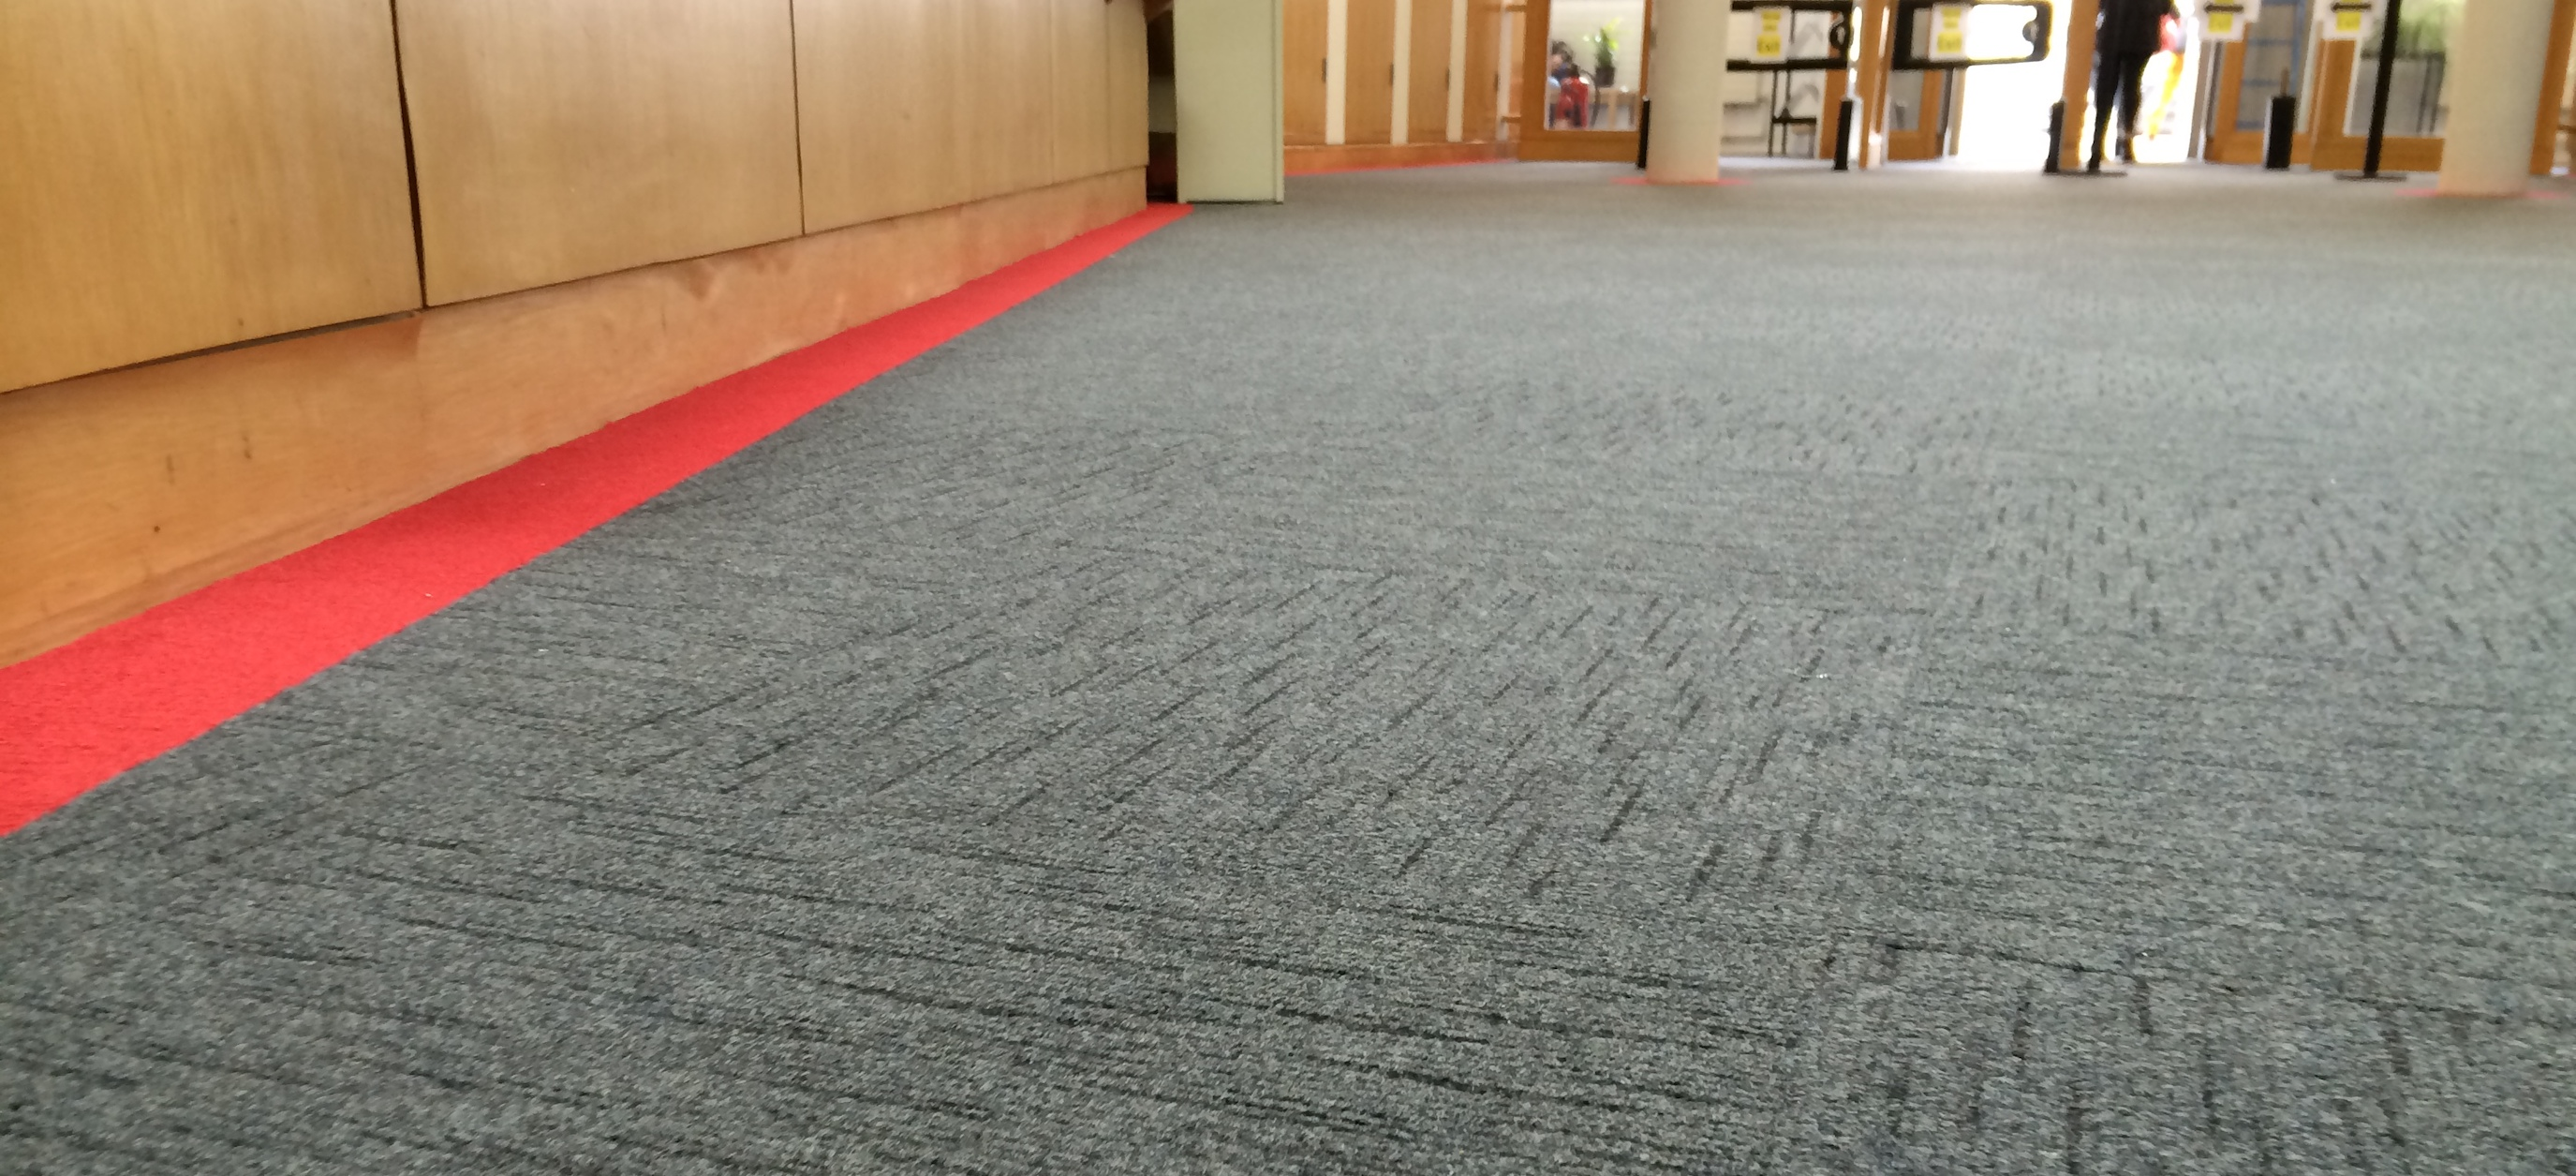 Carpets to Match Preferred Colour Scheme